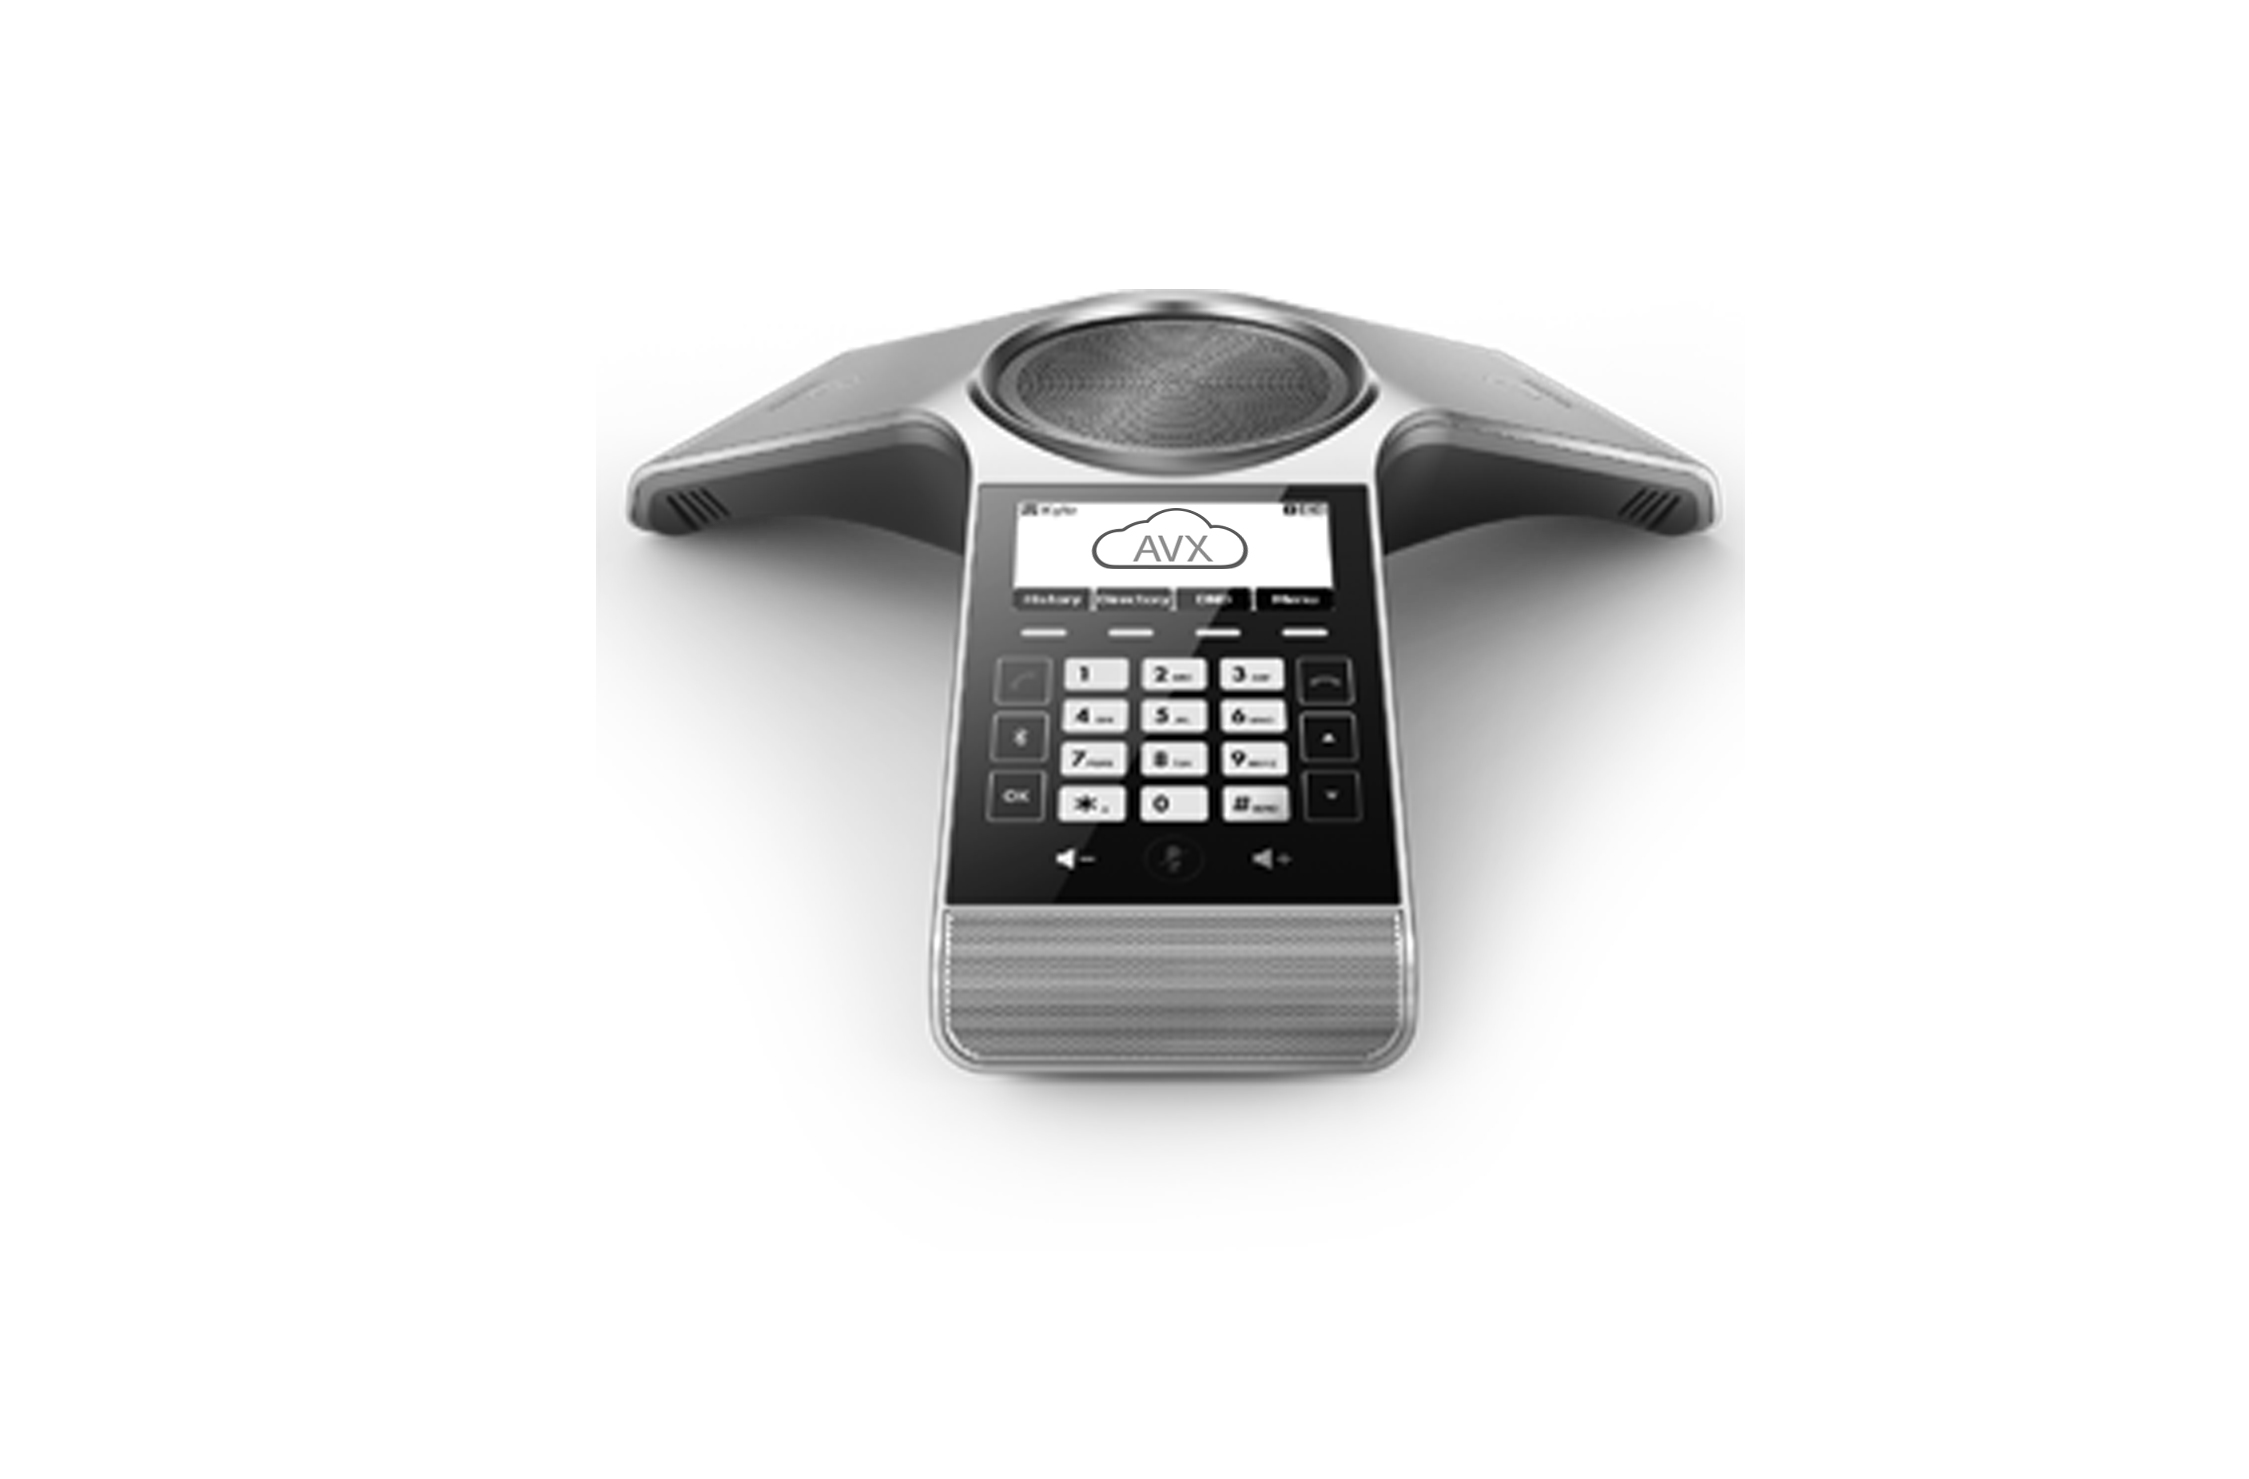 VoIp Provider in Secaucus | Yealink CP920 Conference Phone | AVX Cloud